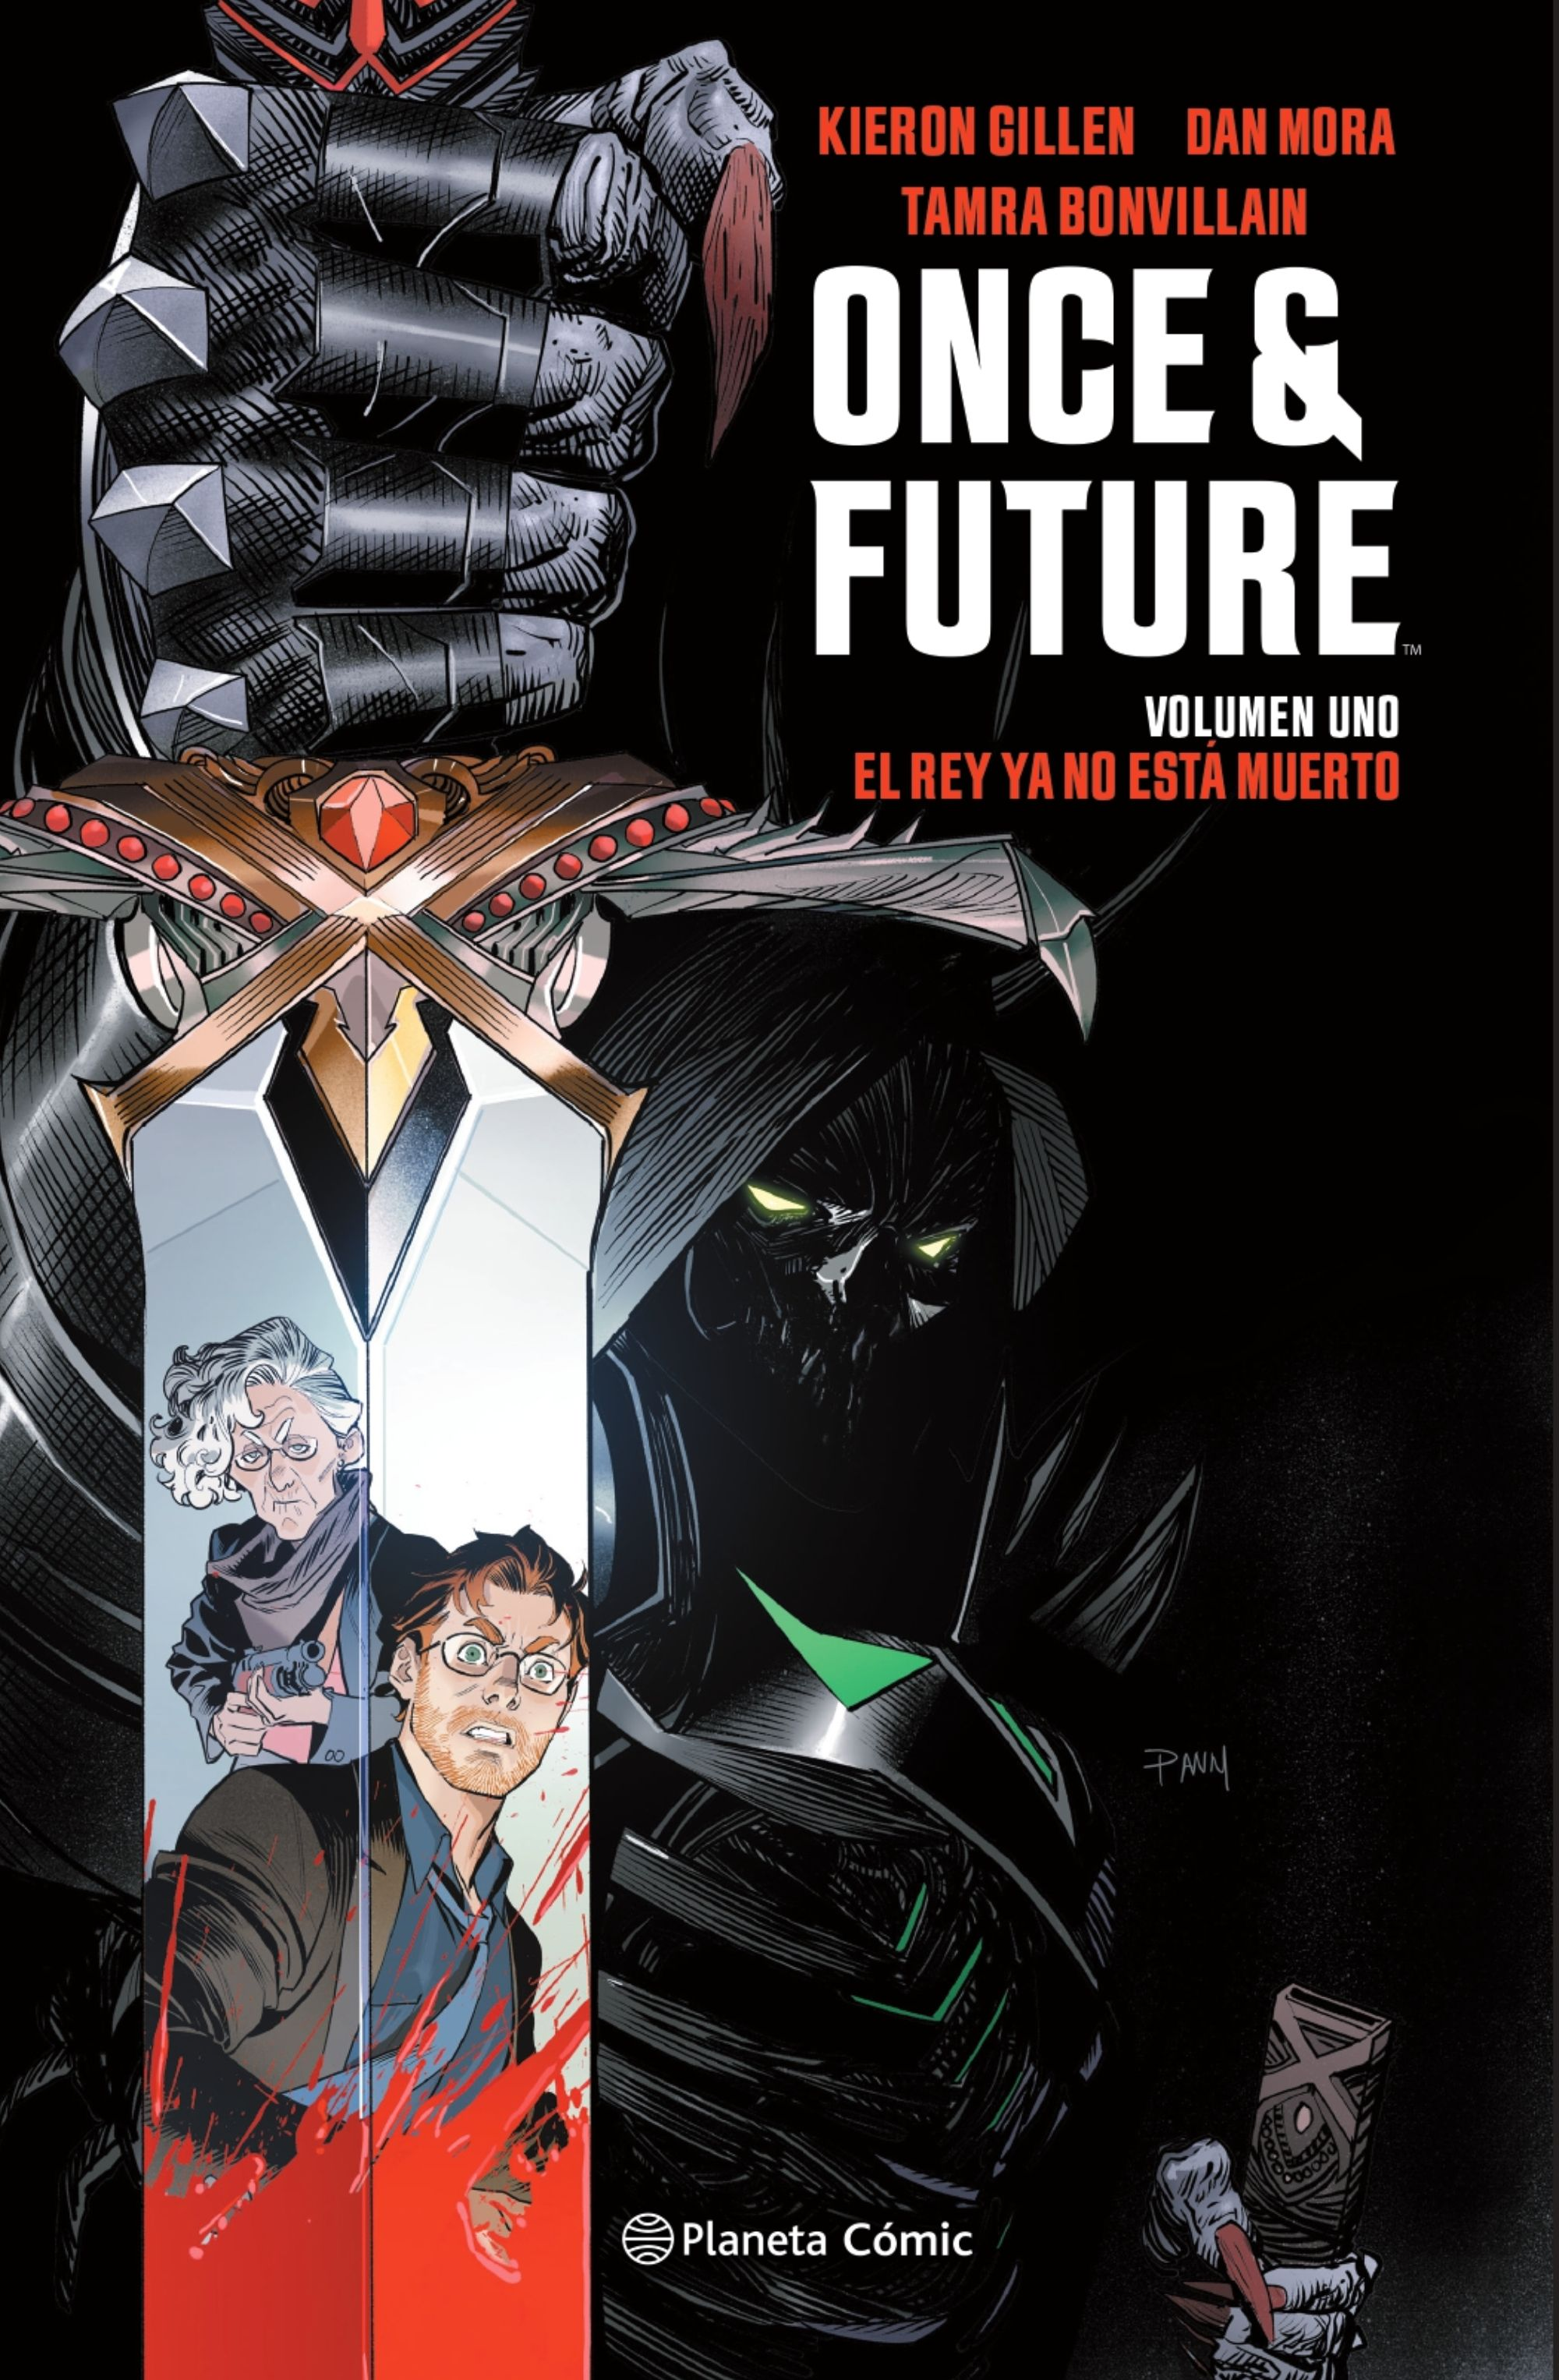 Once and Future volumen uno